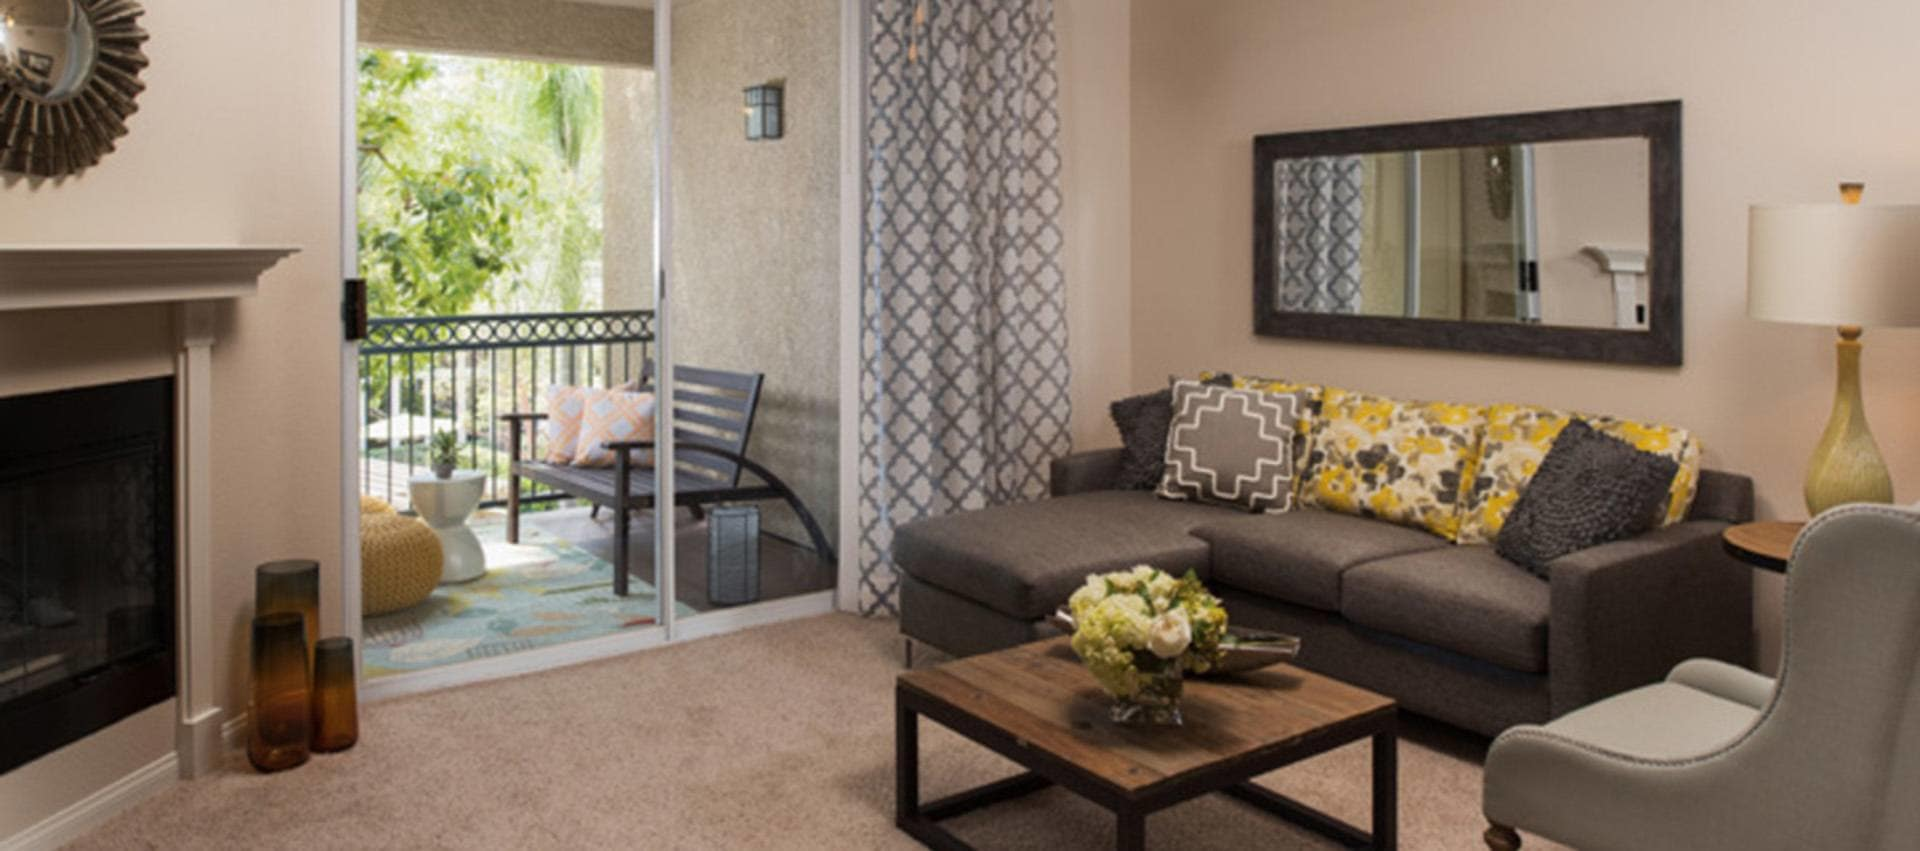 Spacious Living Room in Alize at Aliso Viejo Apartment Homes in Aliso Viejo, California